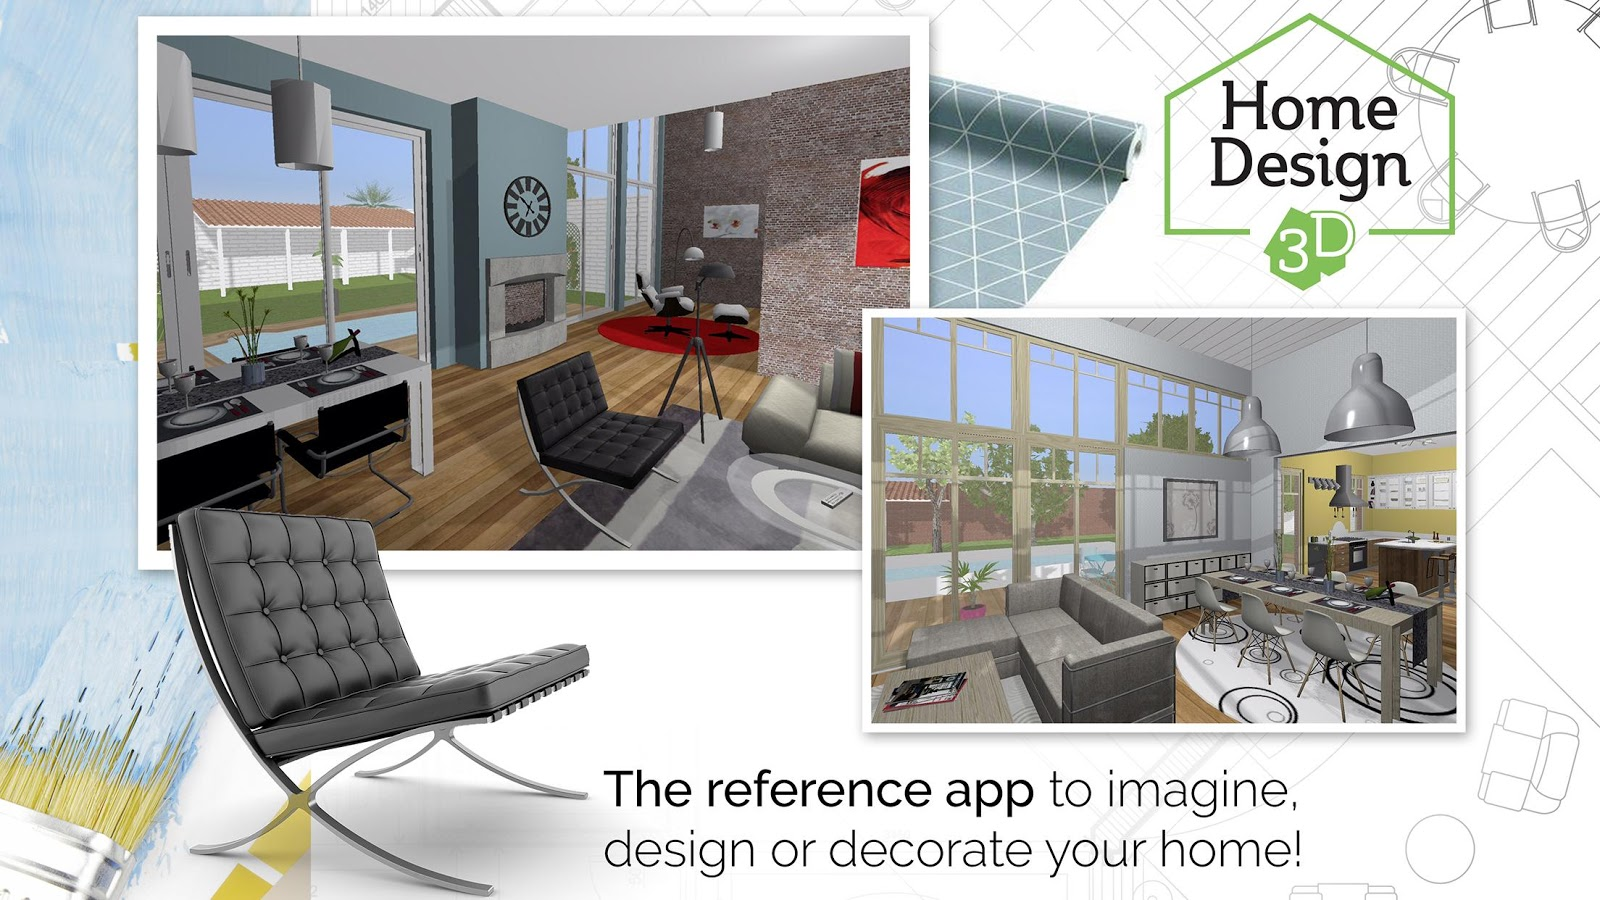 Home design 3d freemium android google play for Architecture design for home app